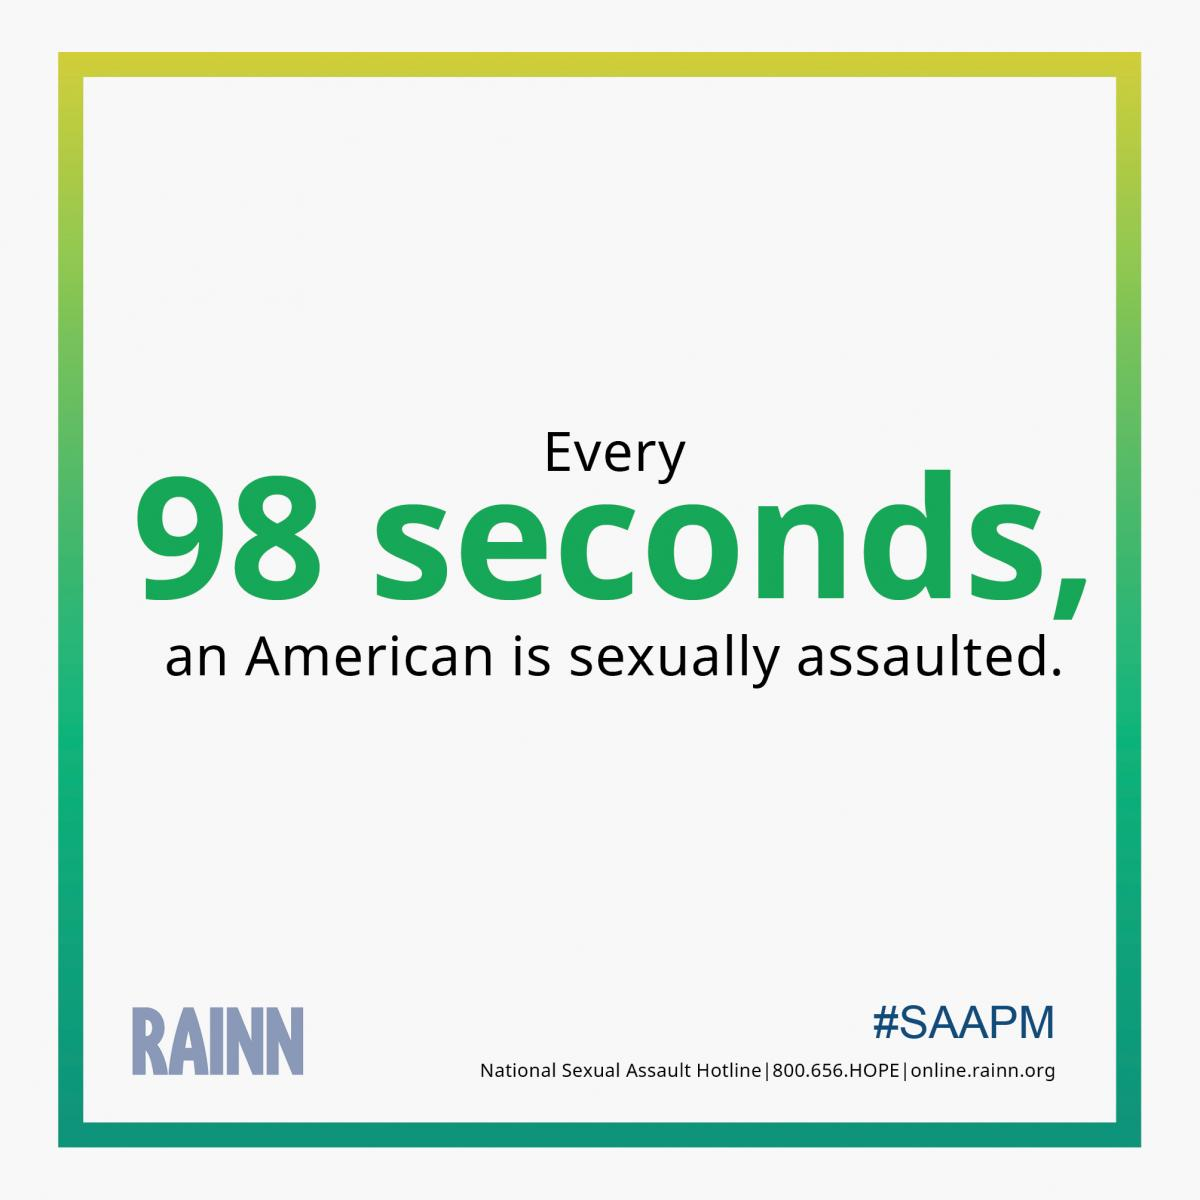 Instagram-ready graphic stating: Every 98 seconds, an American is sexual assaulted